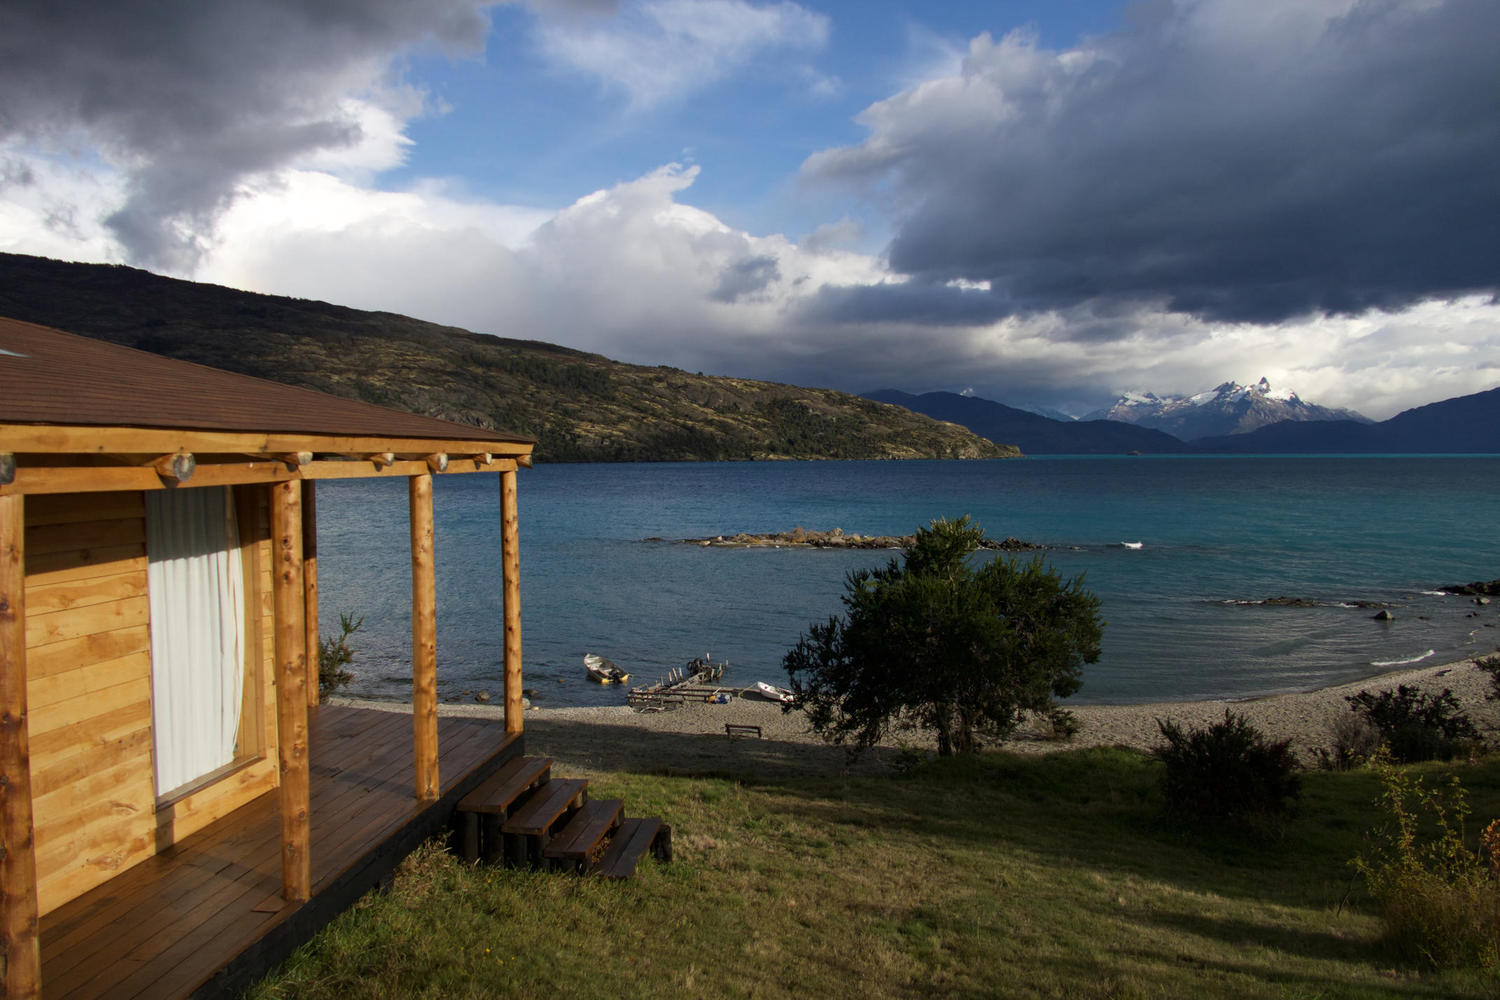 Looking out over Lago General Carrera in Chilean Patagonia